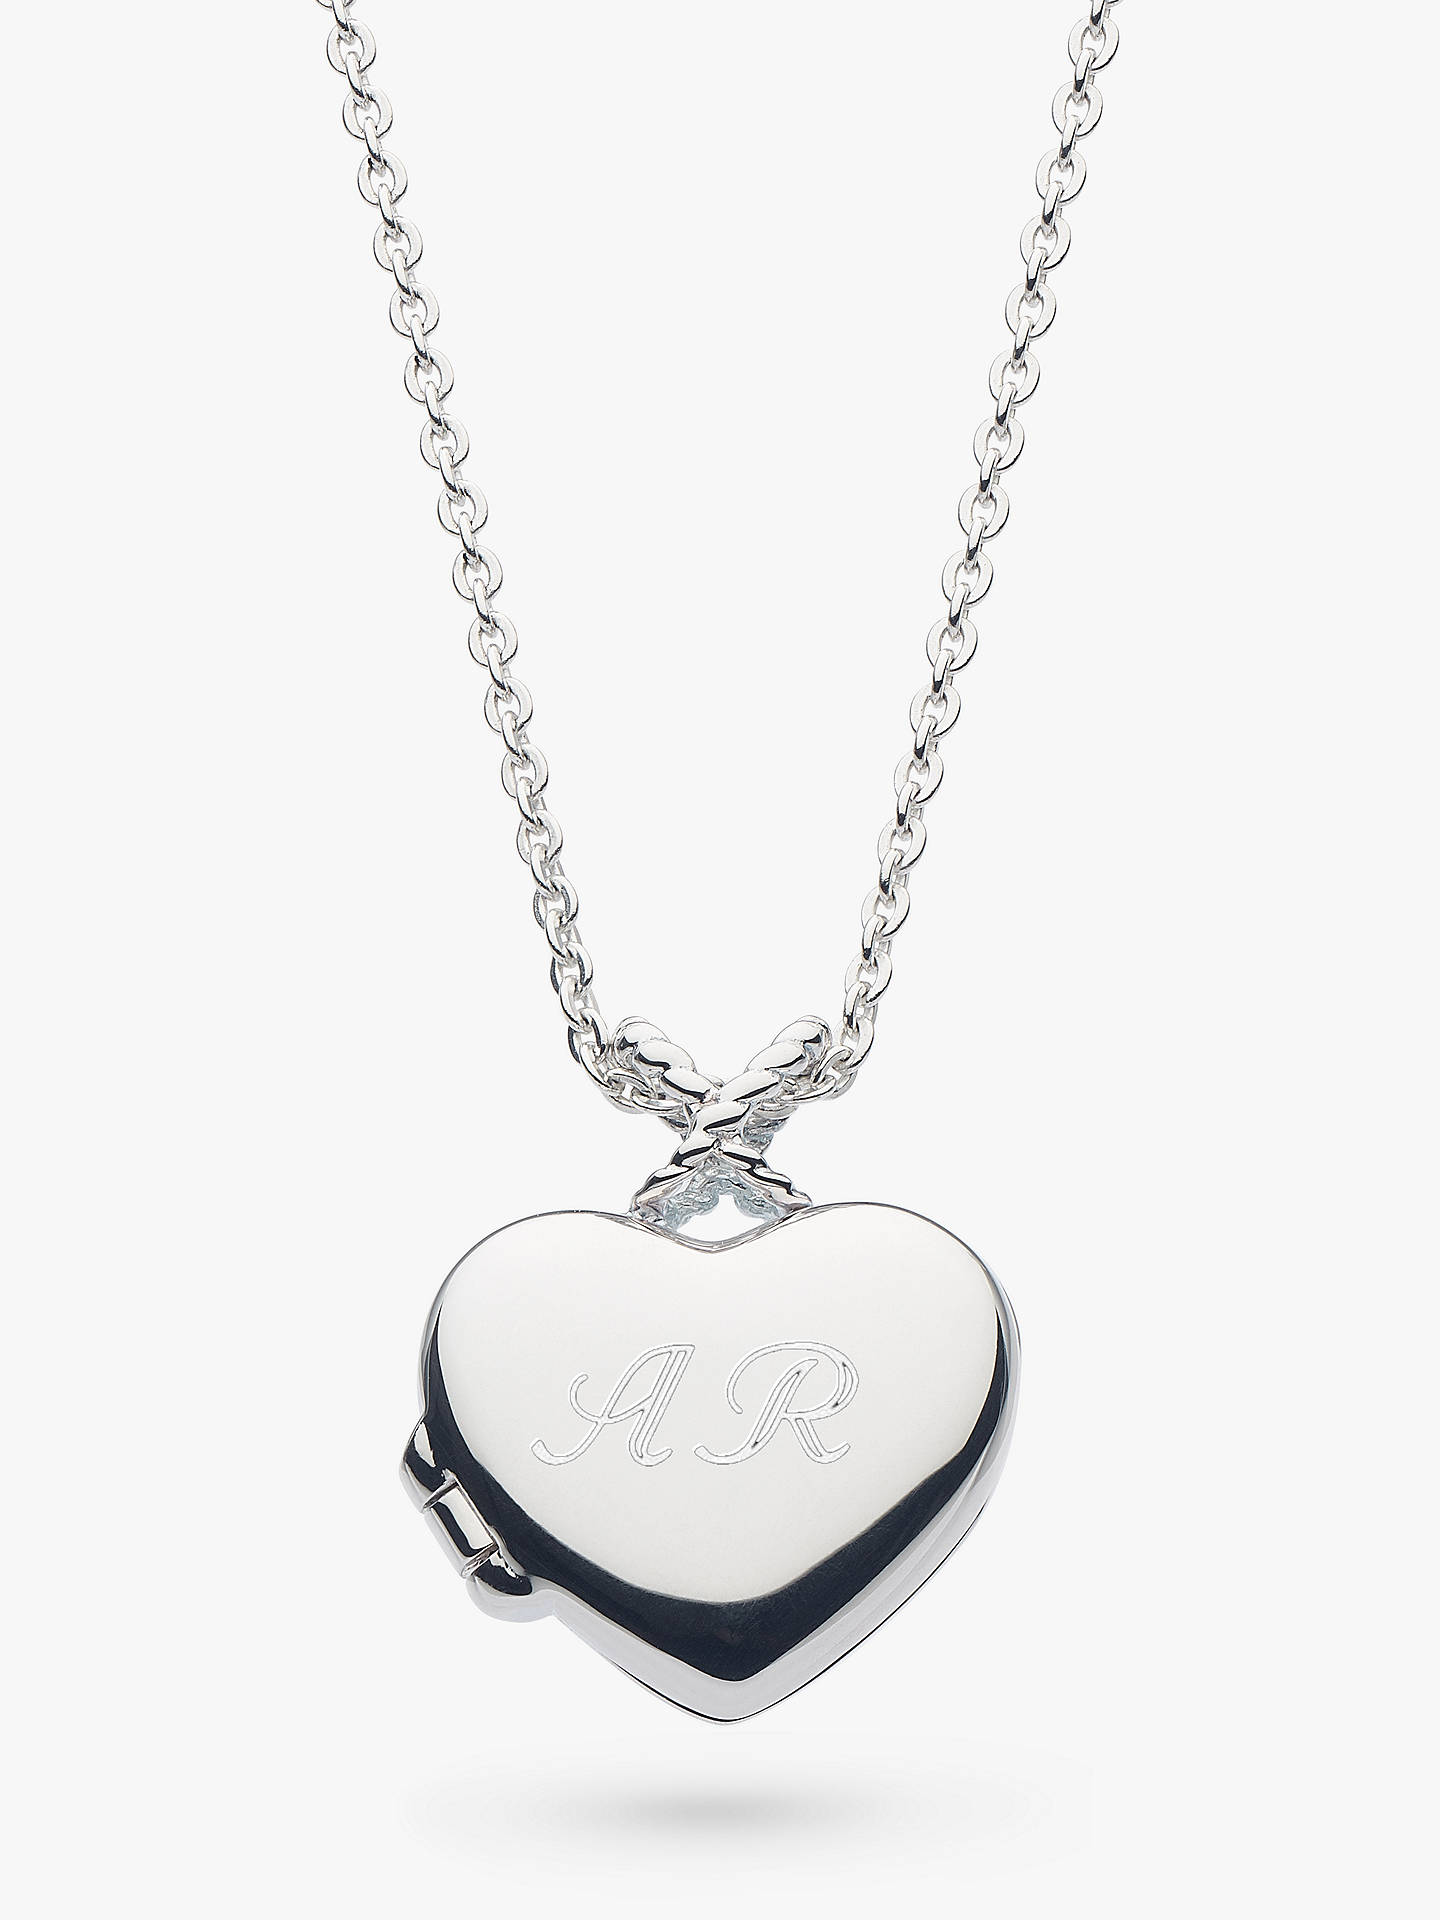 398f0aa98c9 Buy Kit Heath Personalised Sterling Silver Heart Locket Pendant Necklace,  Silver Online at johnlewis.